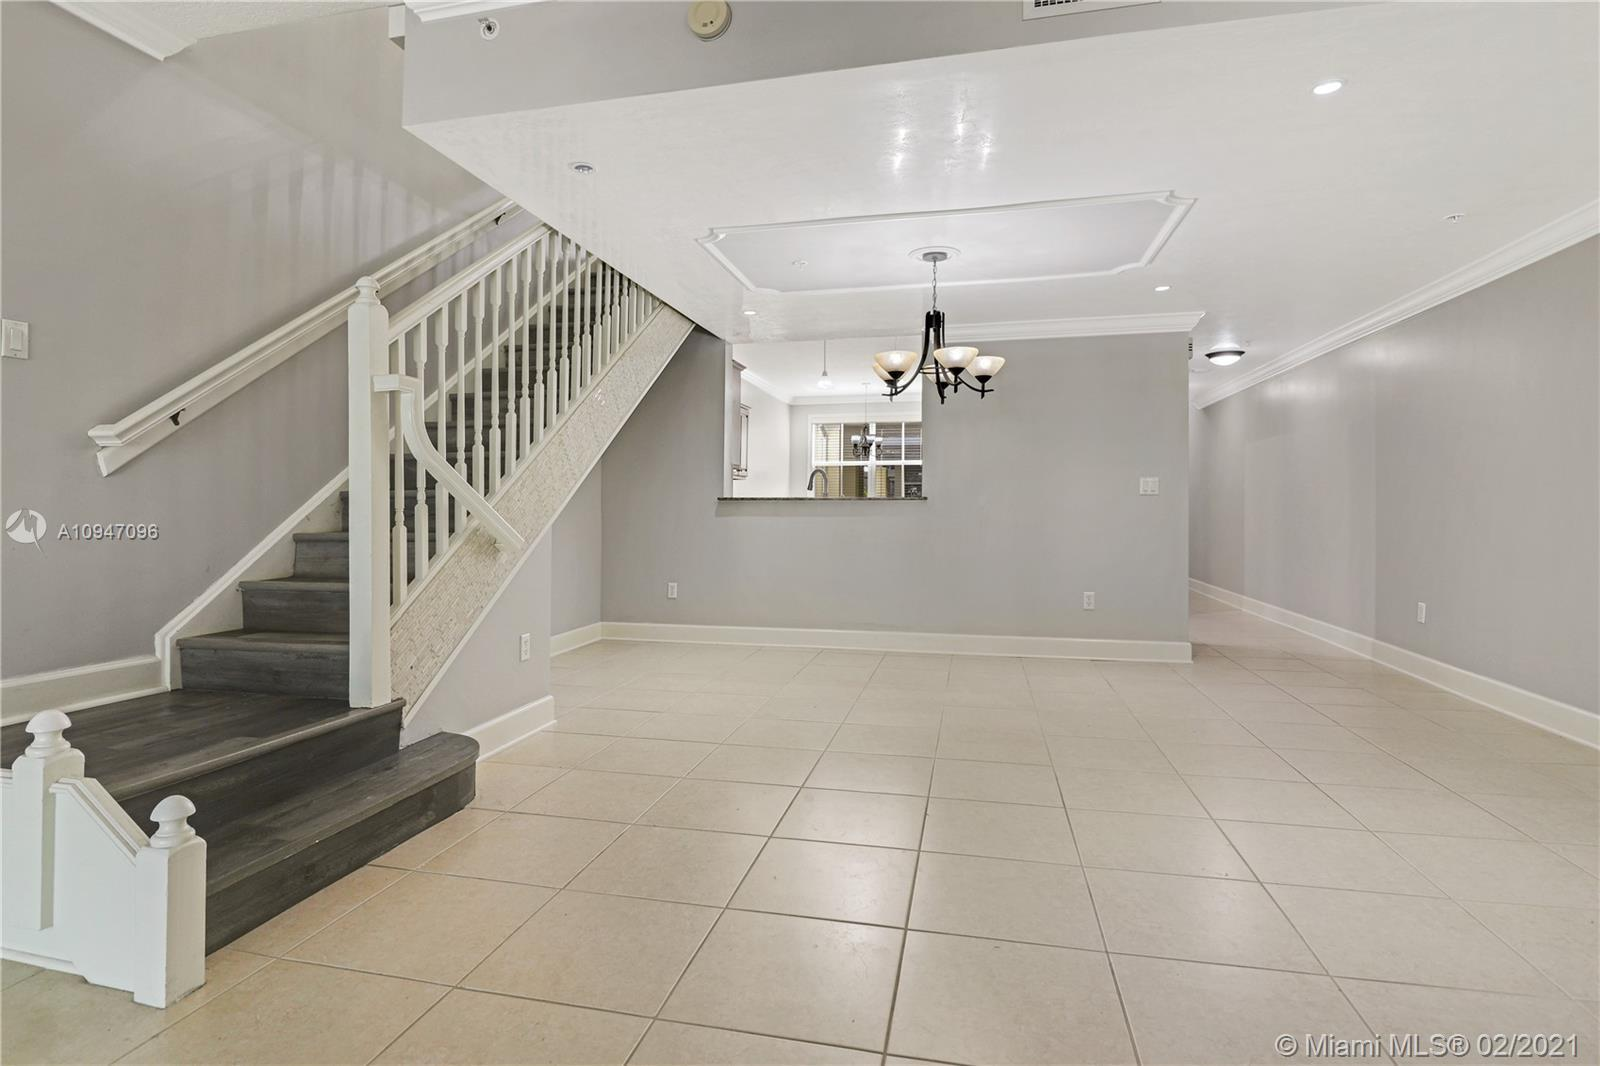 UNIT RENTED! for investors Luxury 3br/2.5ba townhouse condo in a corner location in The Reserve of